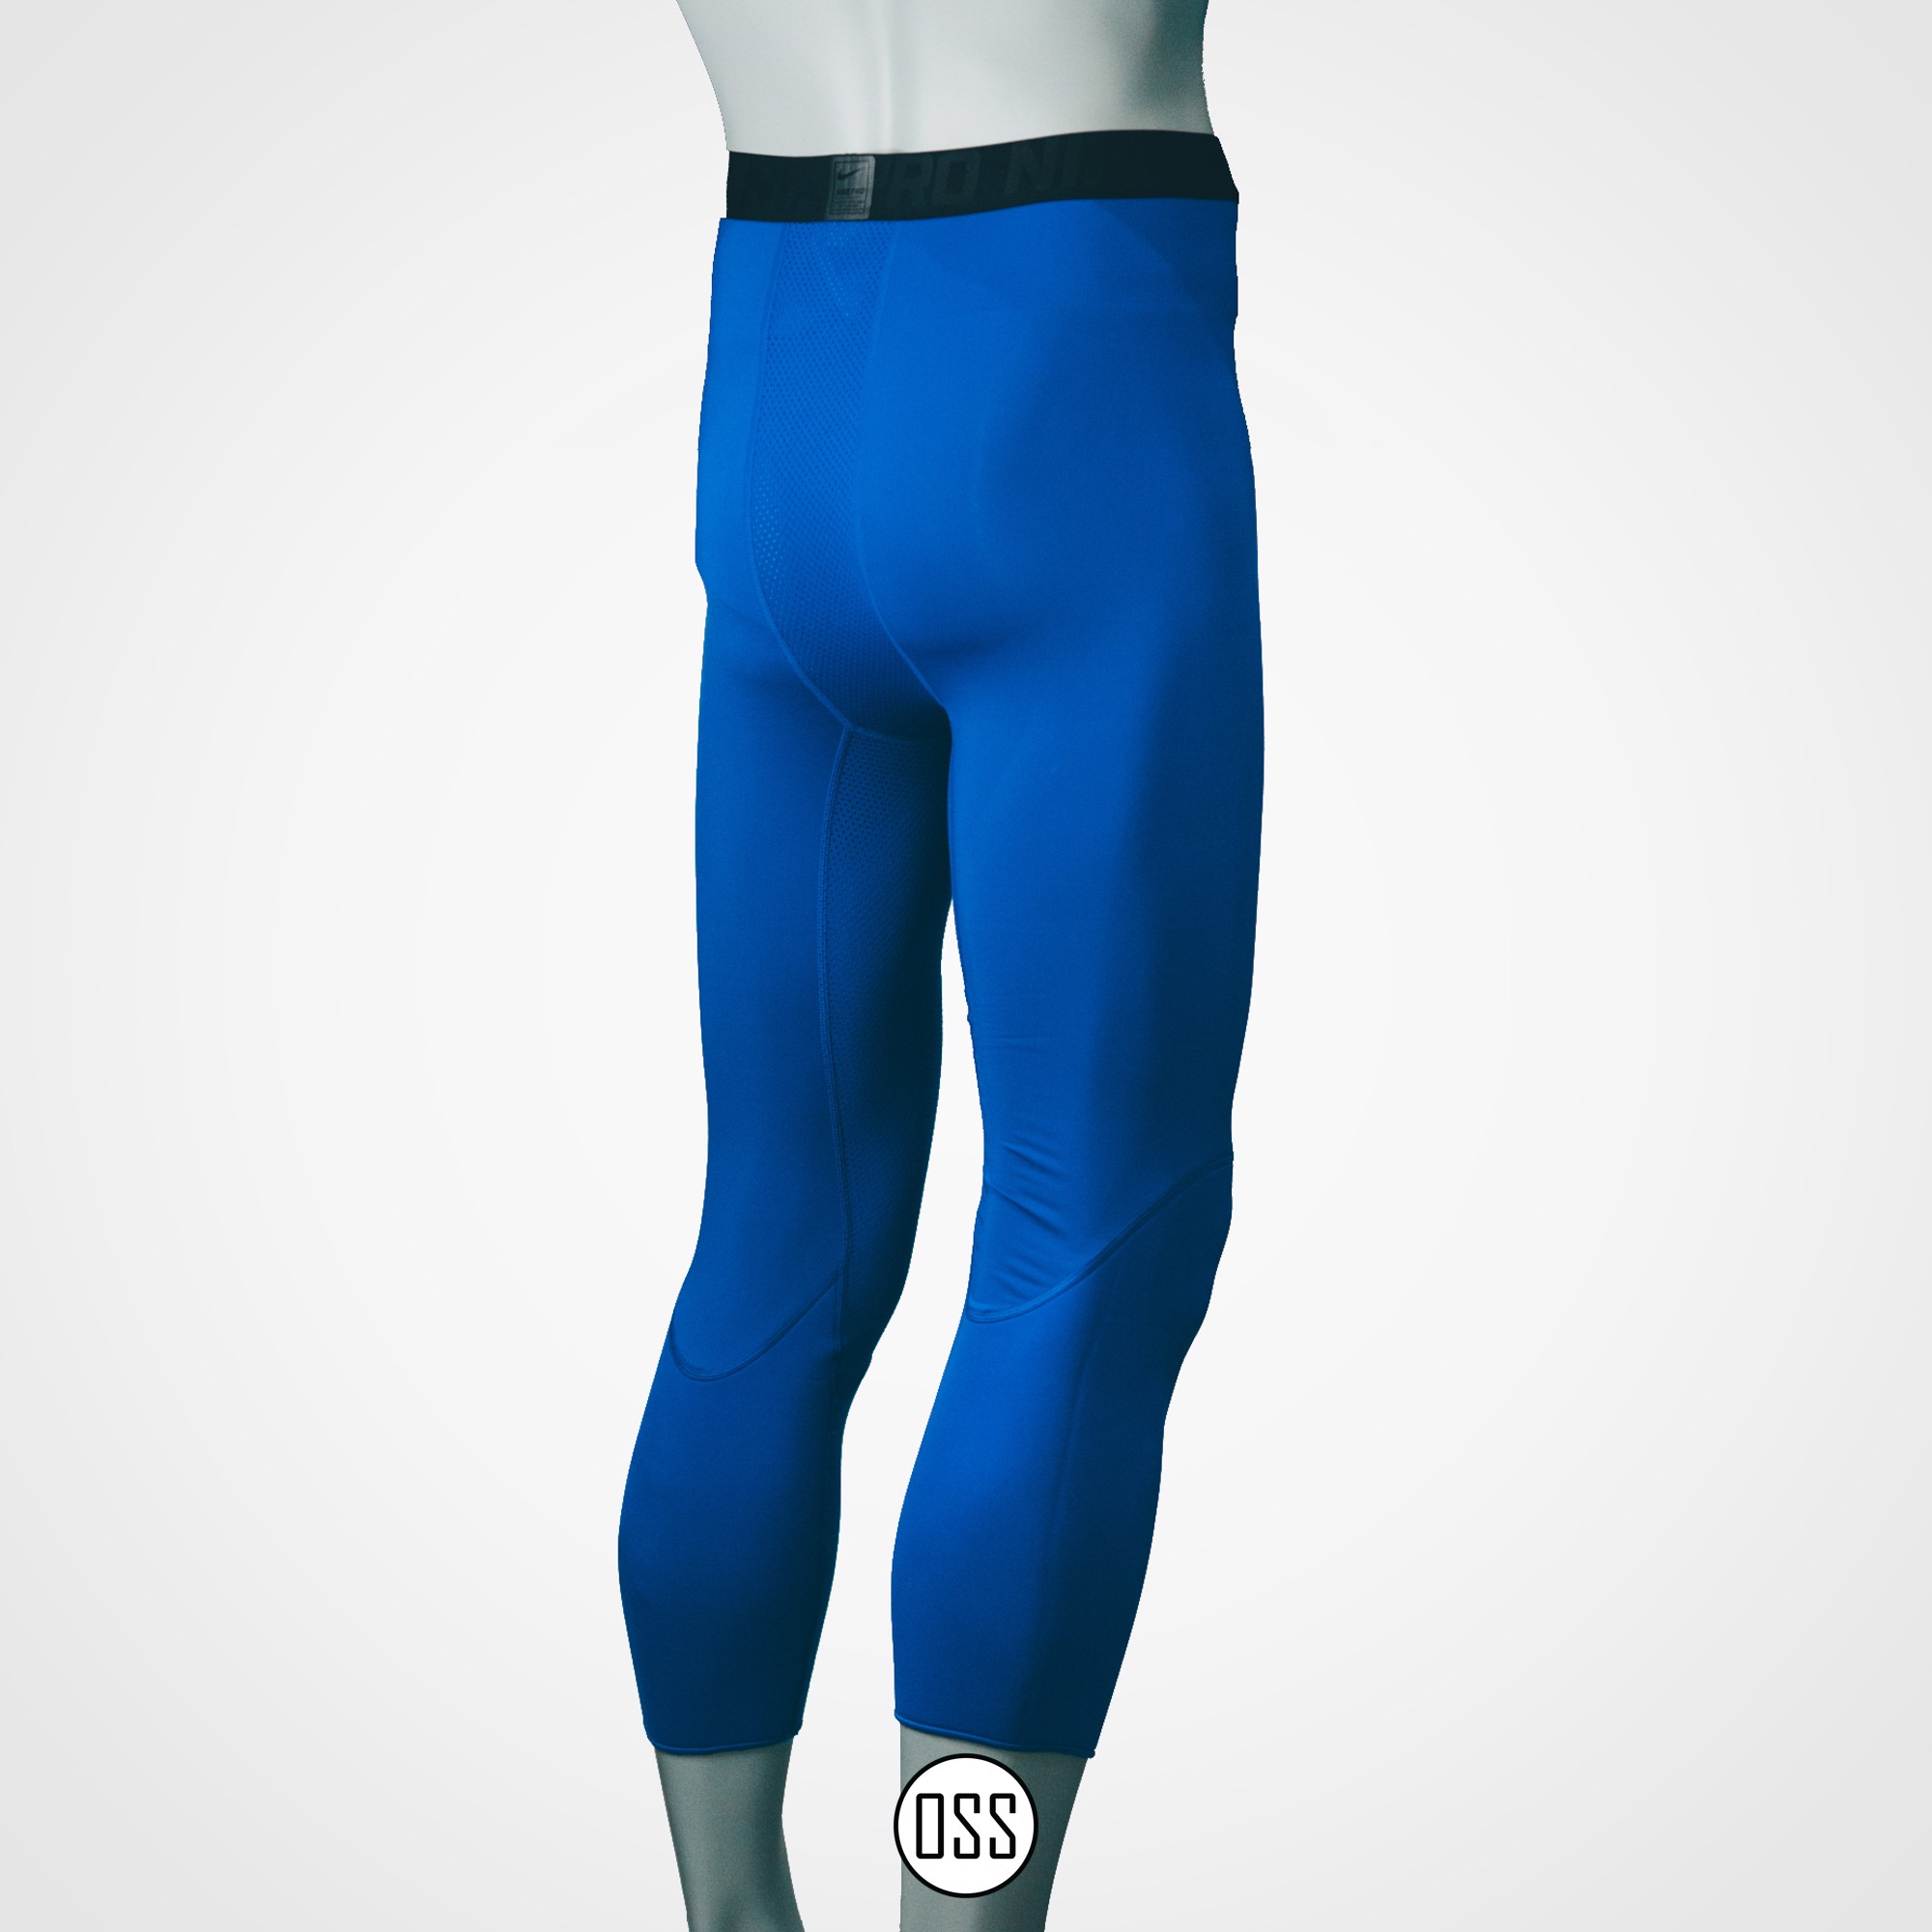 Nike Pro Combat Tight - Royal Blue